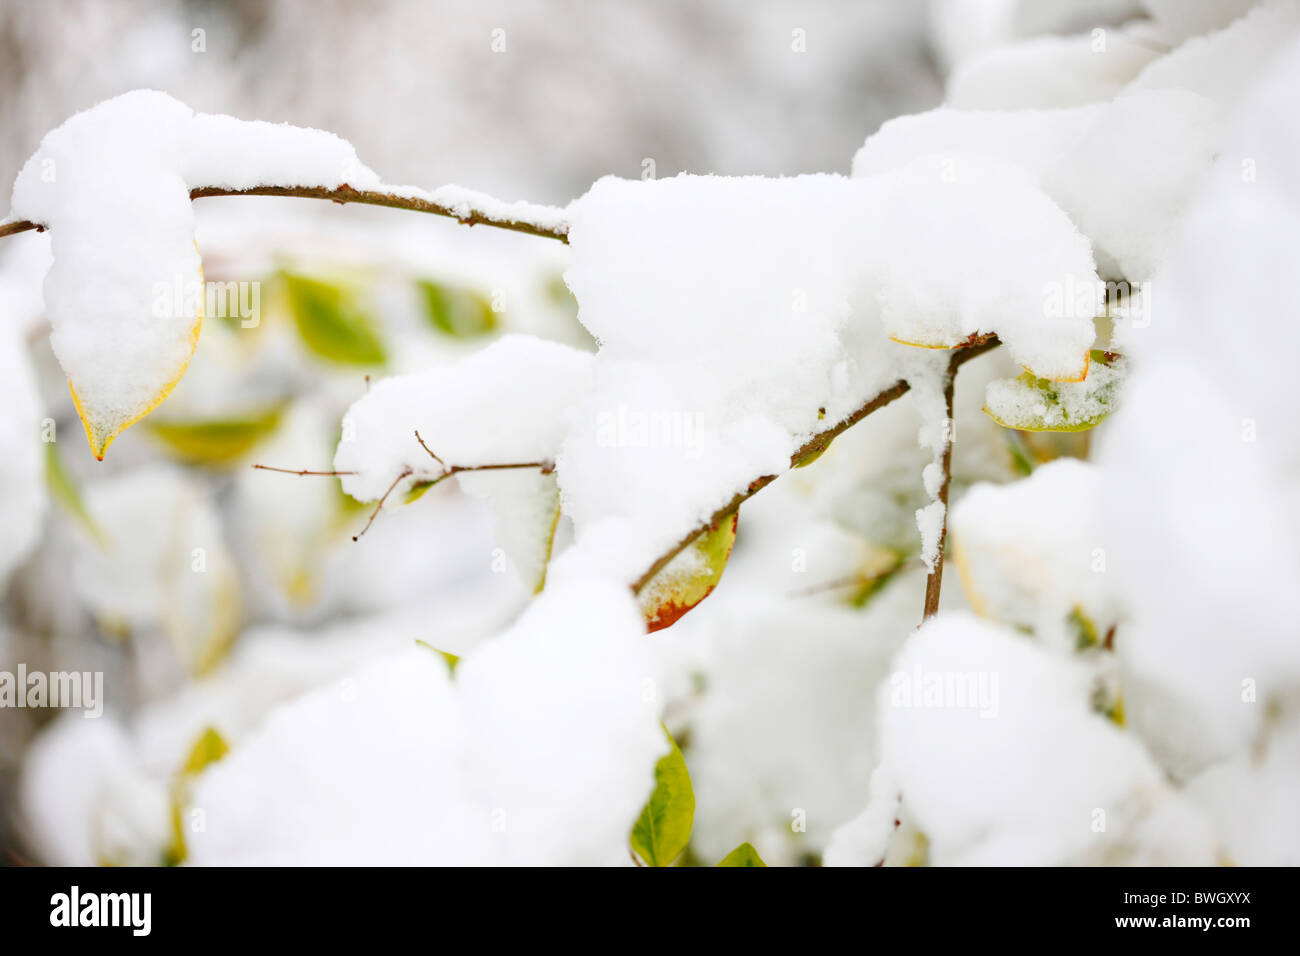 a winter scene icey snow on a choisya goldfinger - fine art photography Jane-Ann Butler Photography JABP953 RIGHTS - Stock Image